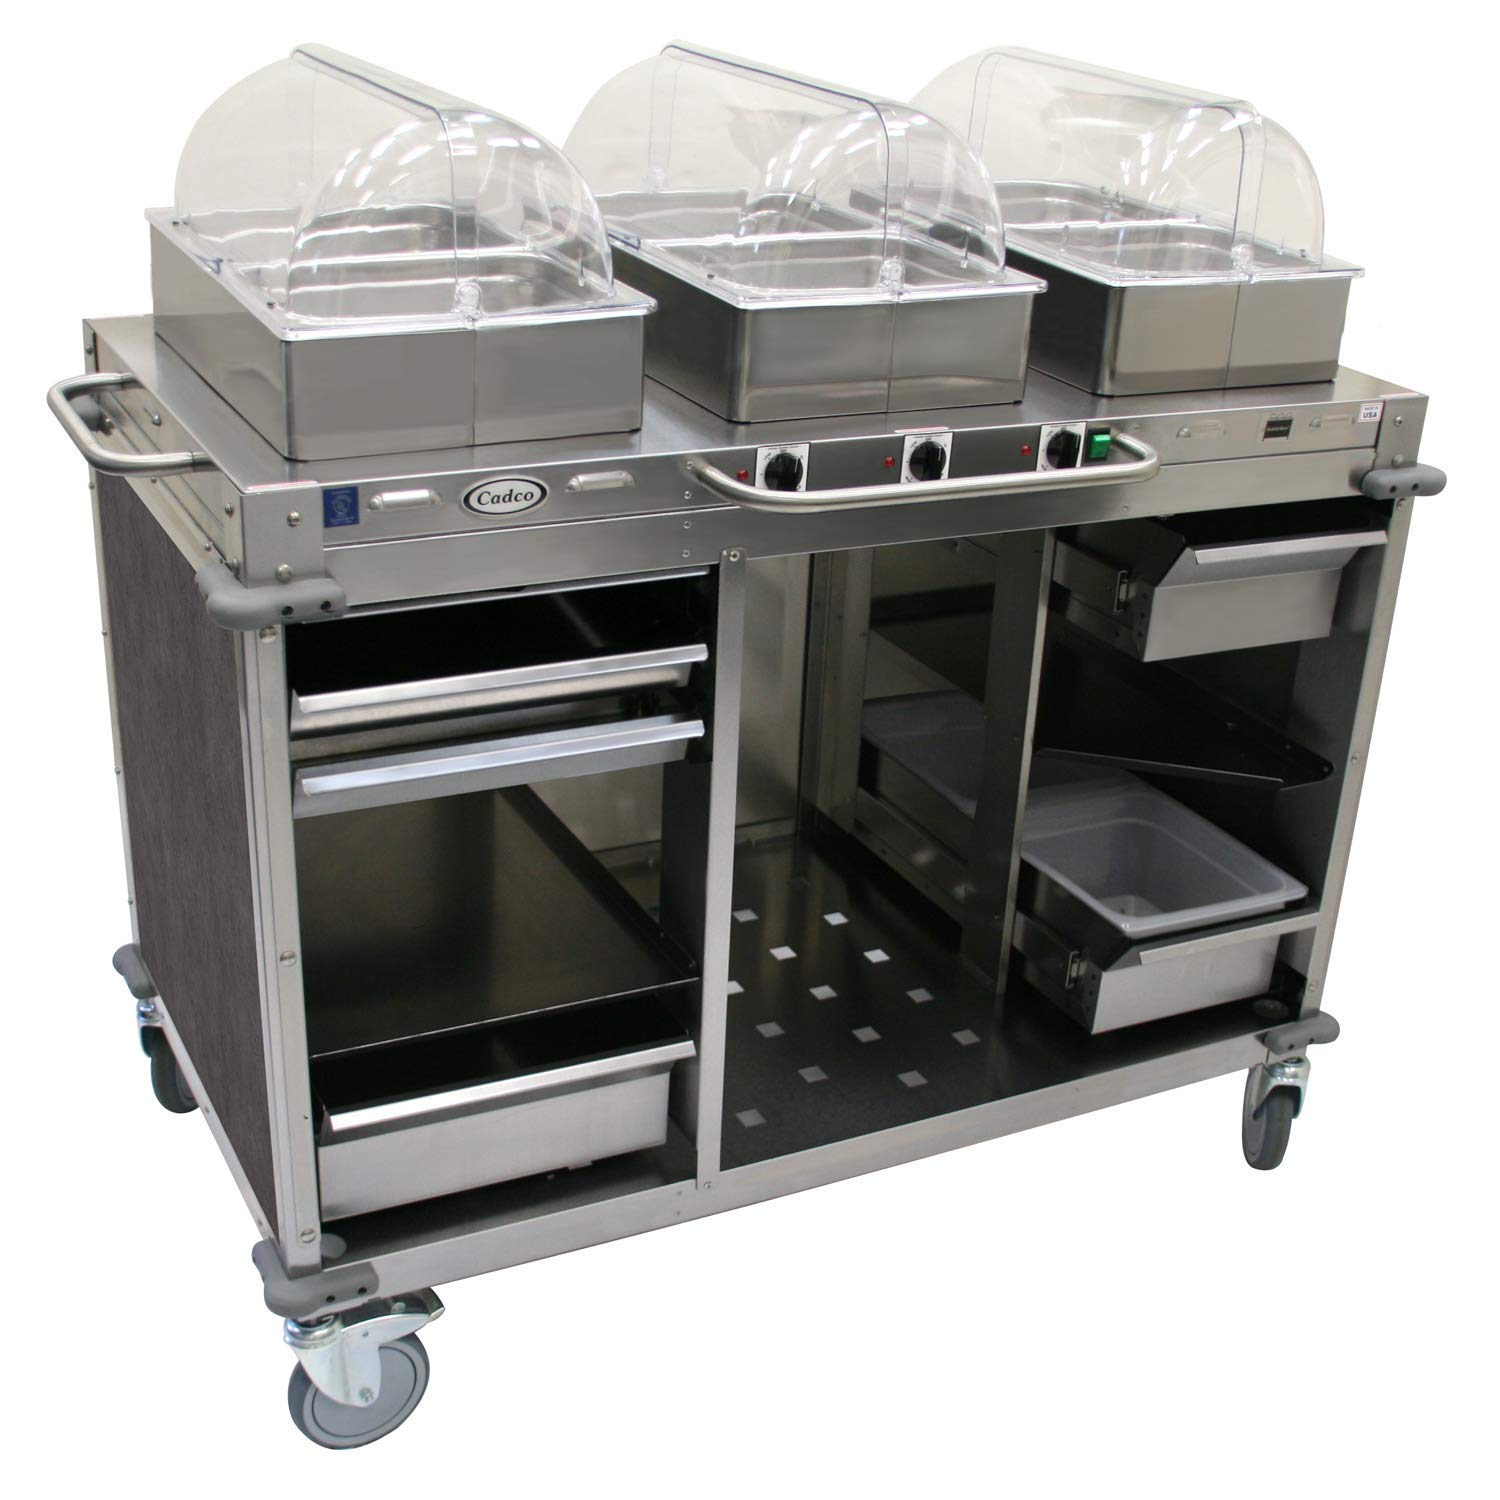 "Mobile Hot Buffet Cart Color: Mission Smoke Grey, Size: 51"" H x 55.5"" W x 28.75"" D"